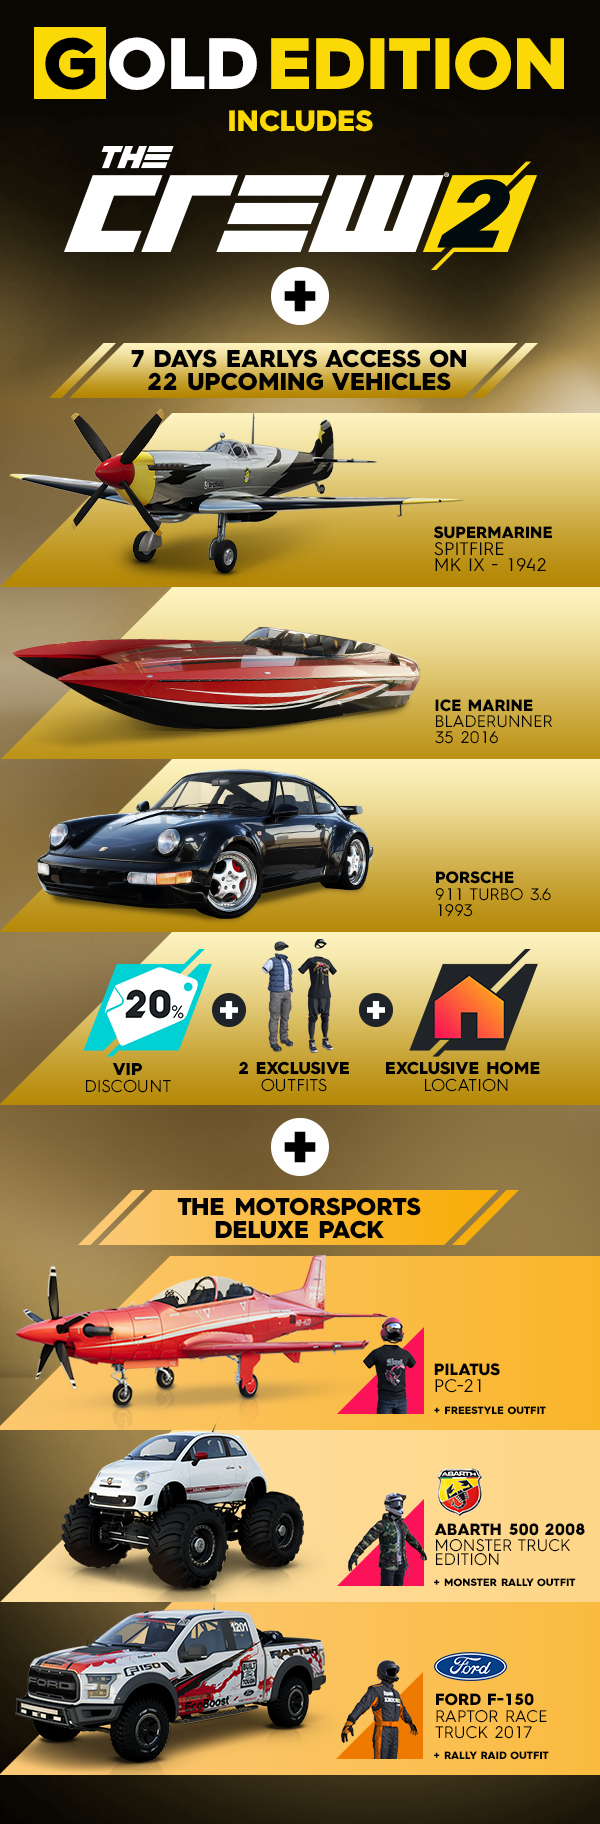 The Crew 2 Gold Edition includes